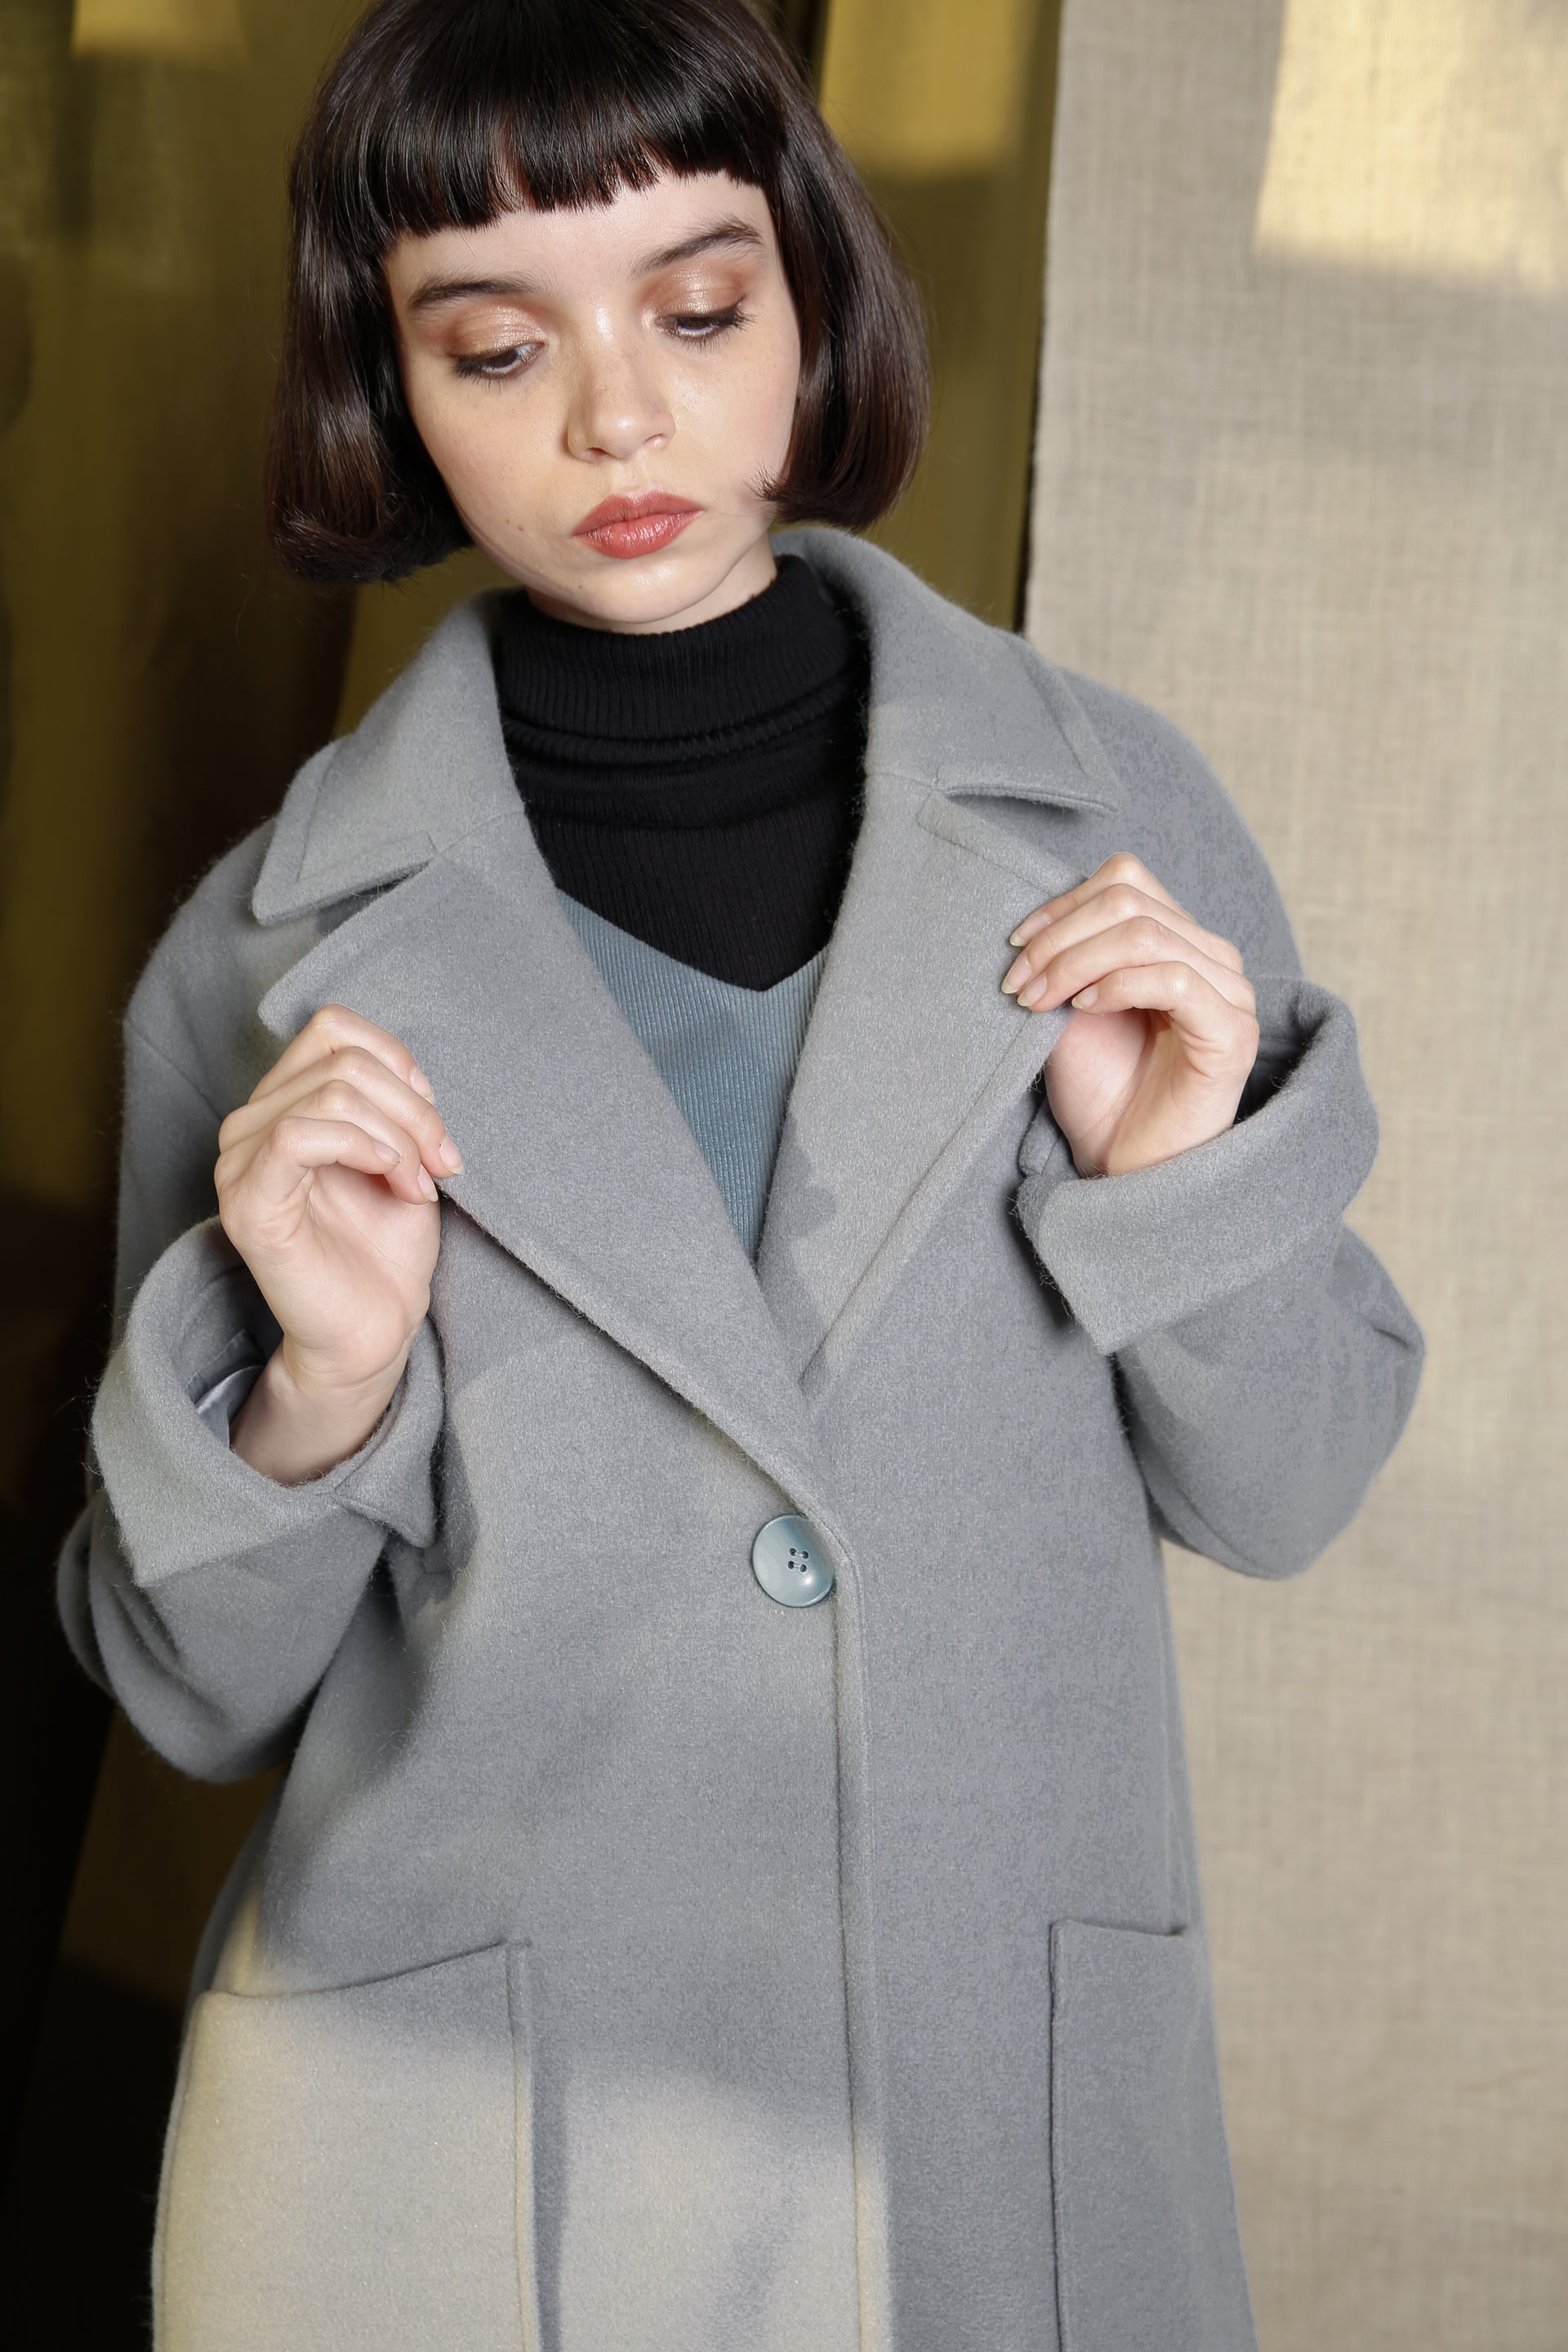 Petitestudio_vanlentina_coat